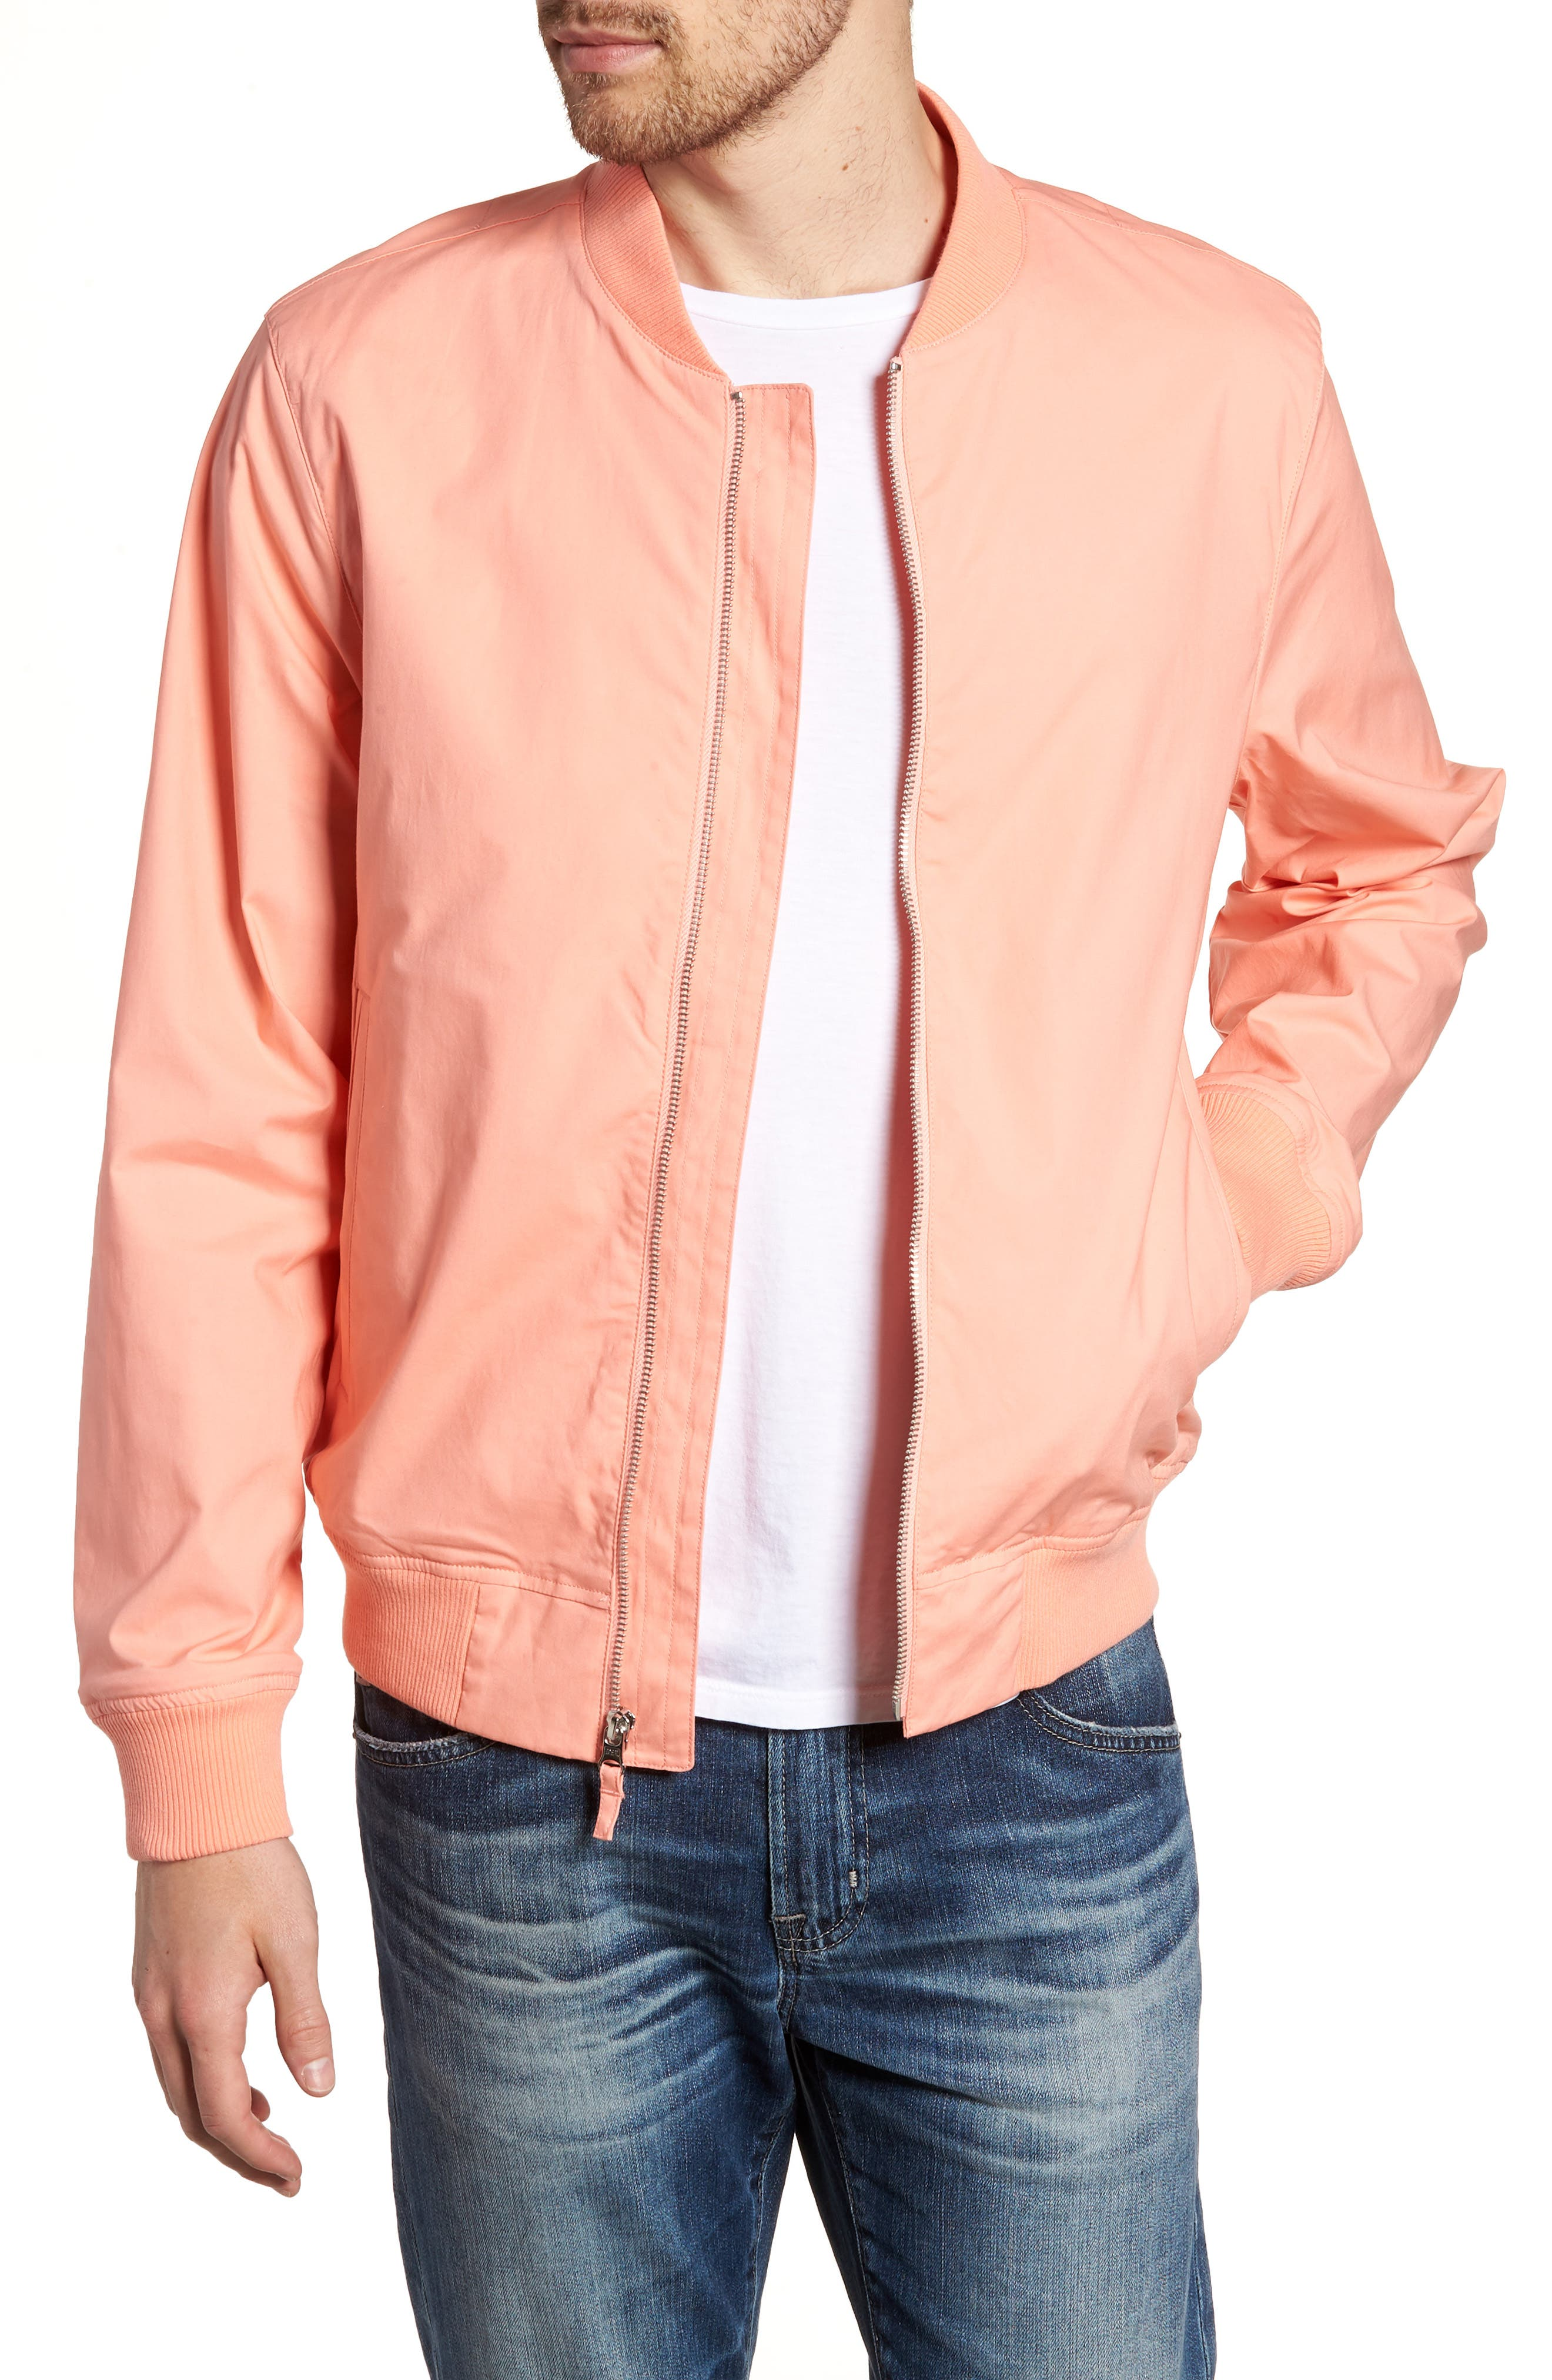 Stretch Bomber Jacket,                         Main,                         color, Solid - Peach